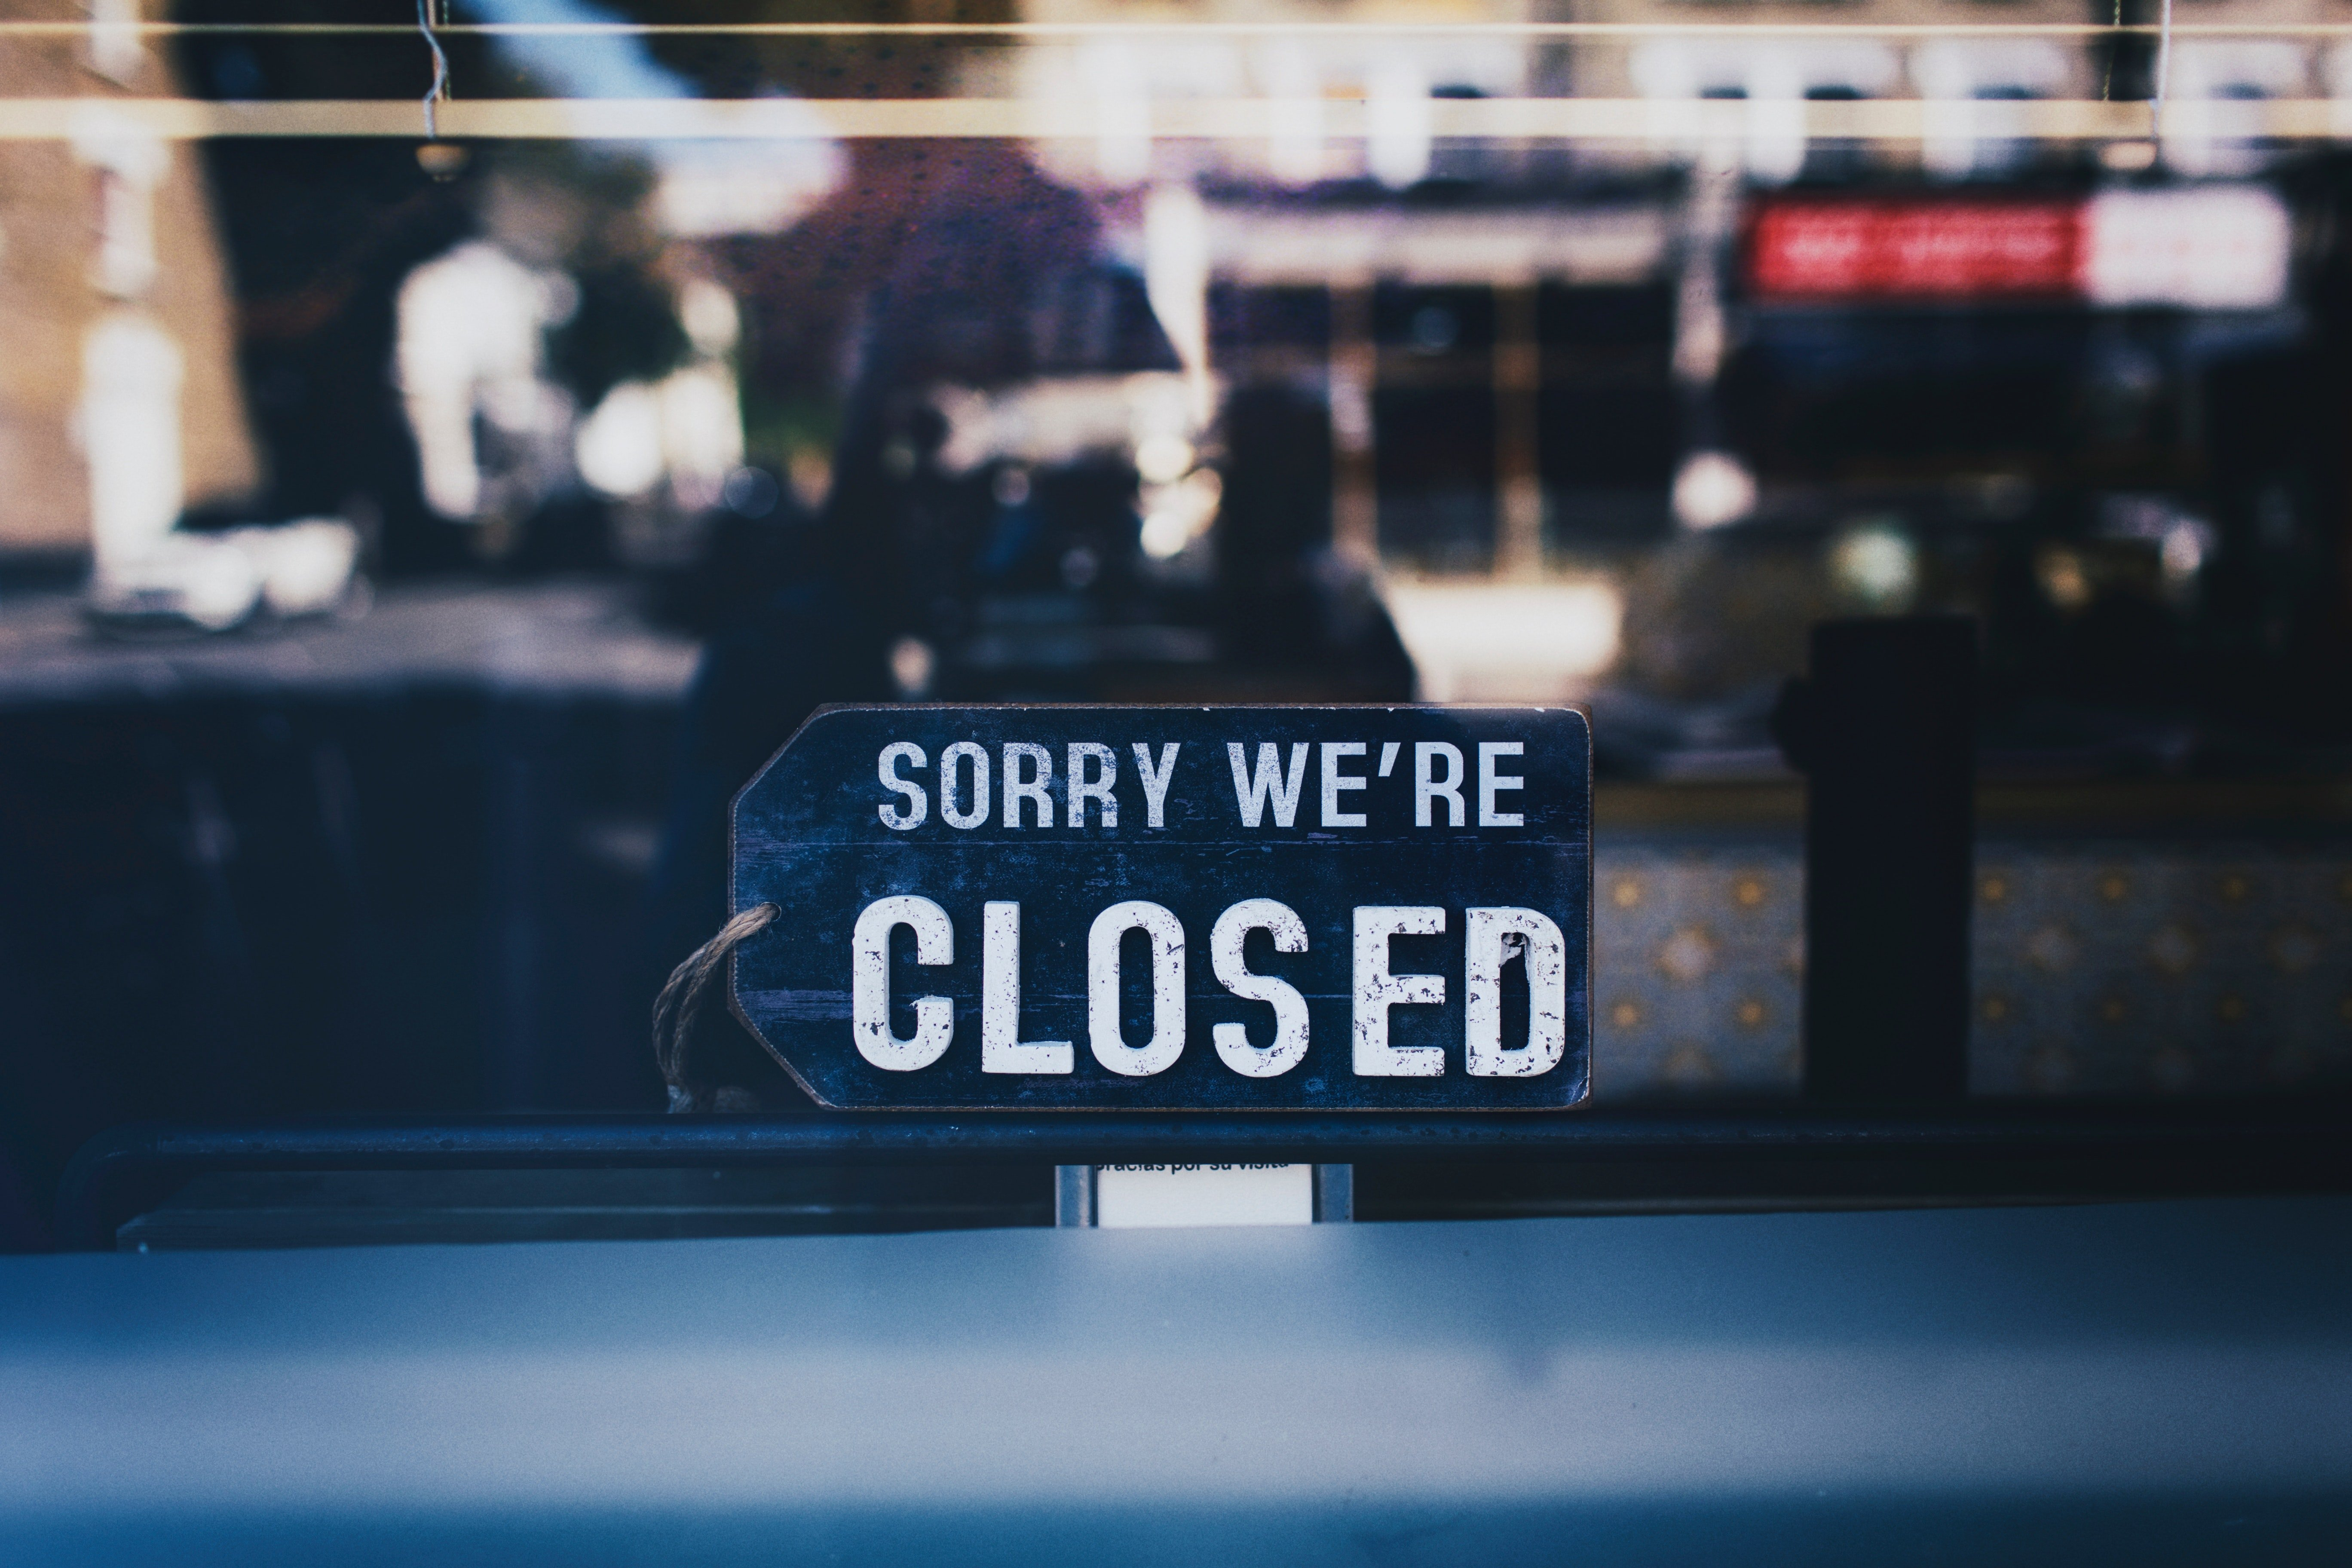 How Blockchain Can Prevent Store Closures